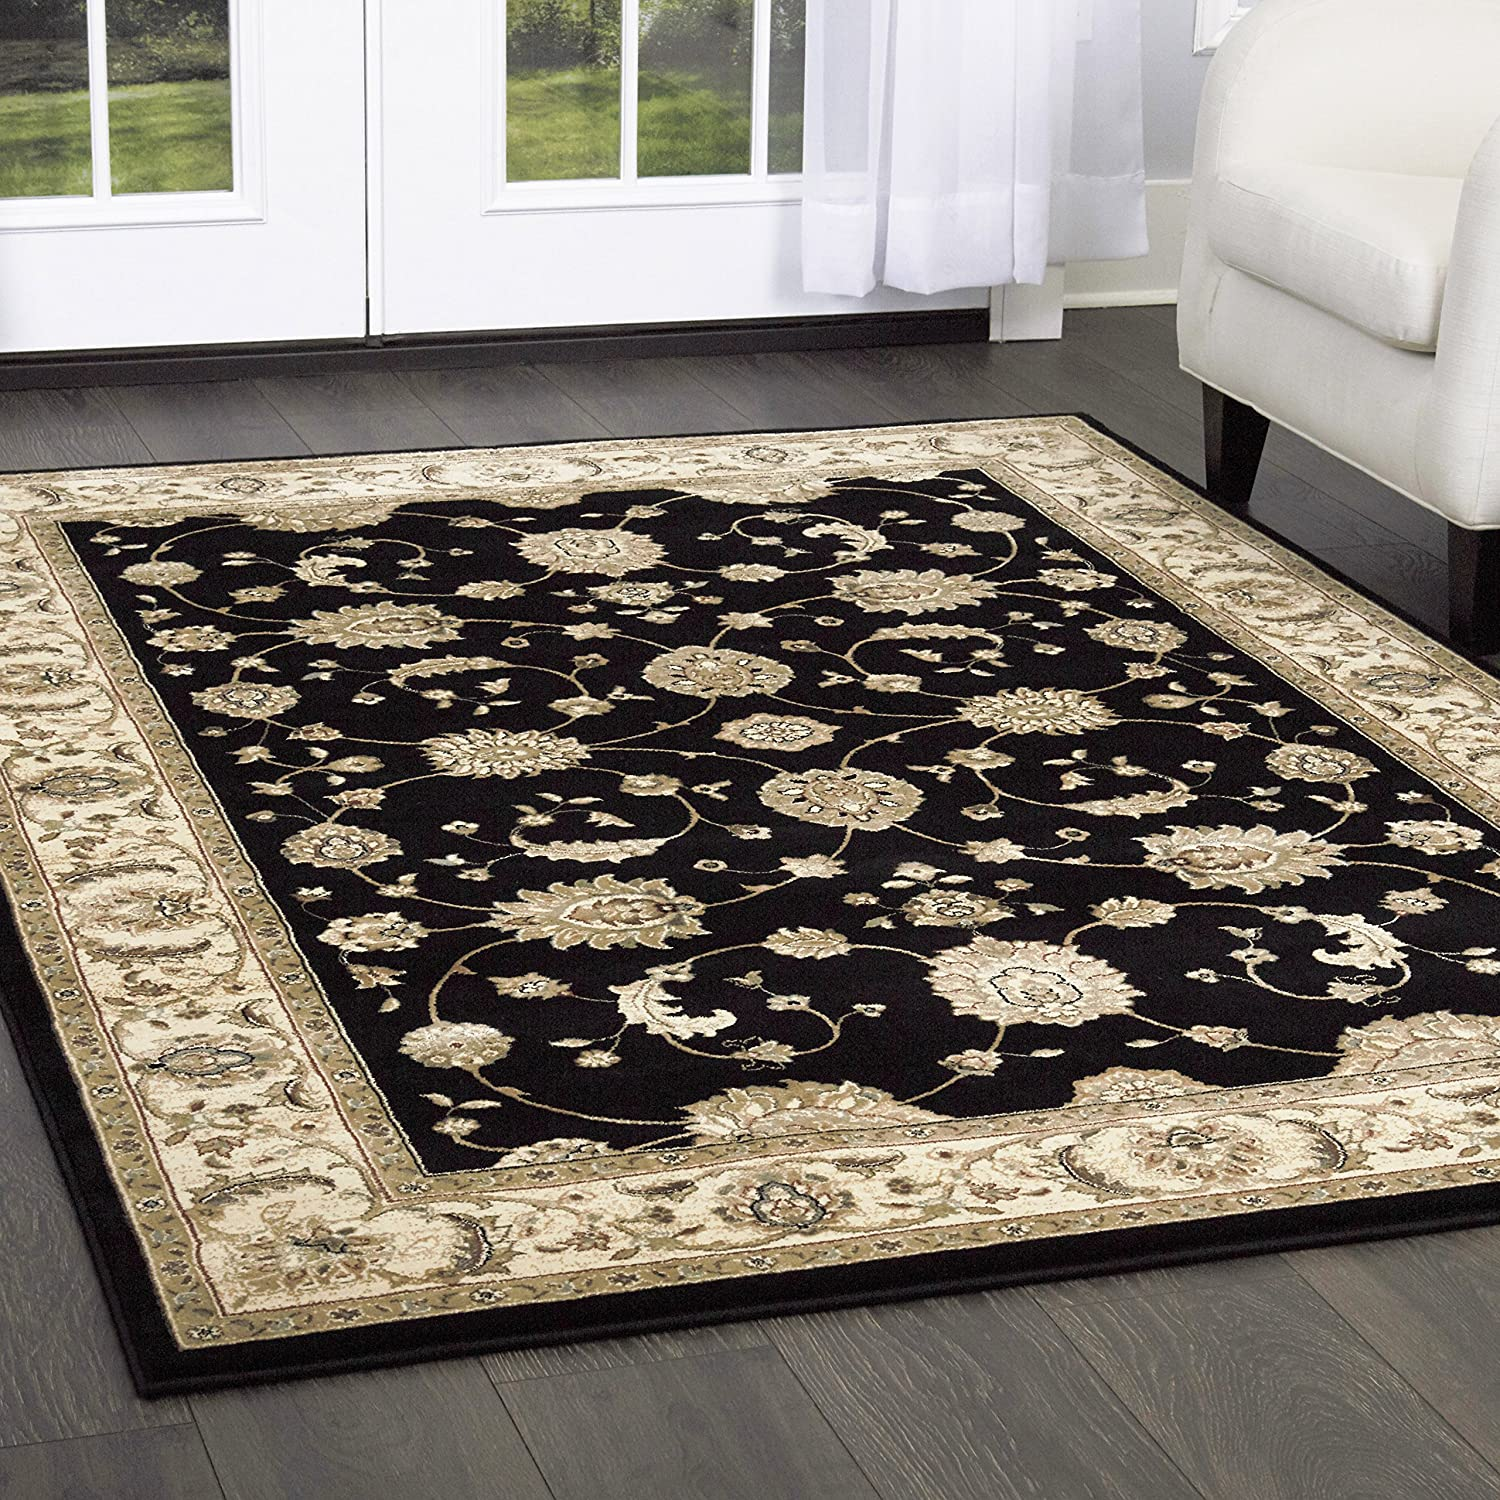 Amazon Com Triumph Fawn Area Rug 5 2 X7 6 Border Black Beige Furniture Decor